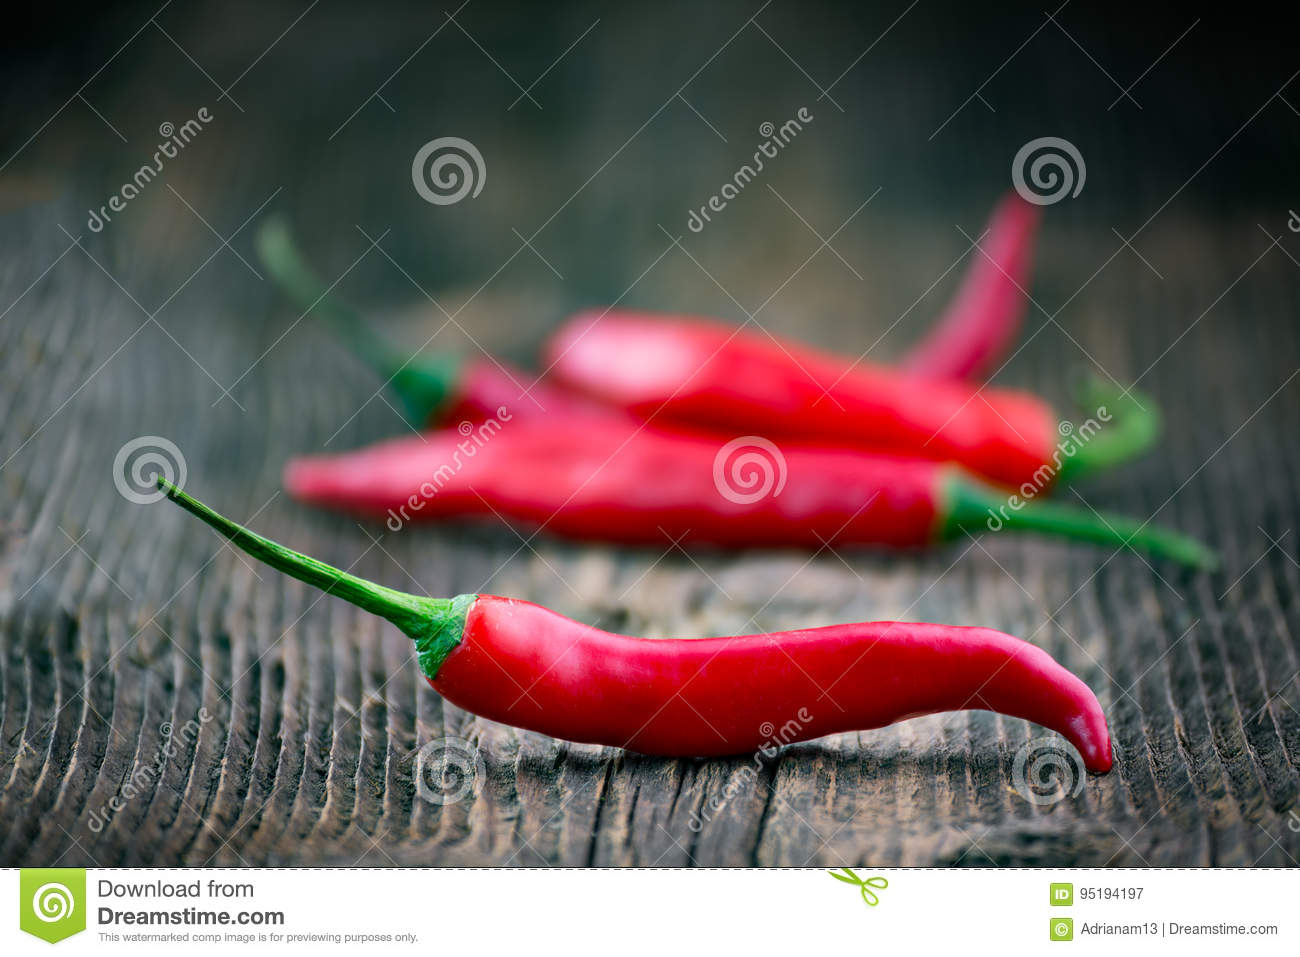 Fresh red chilli pepper on a wooden table